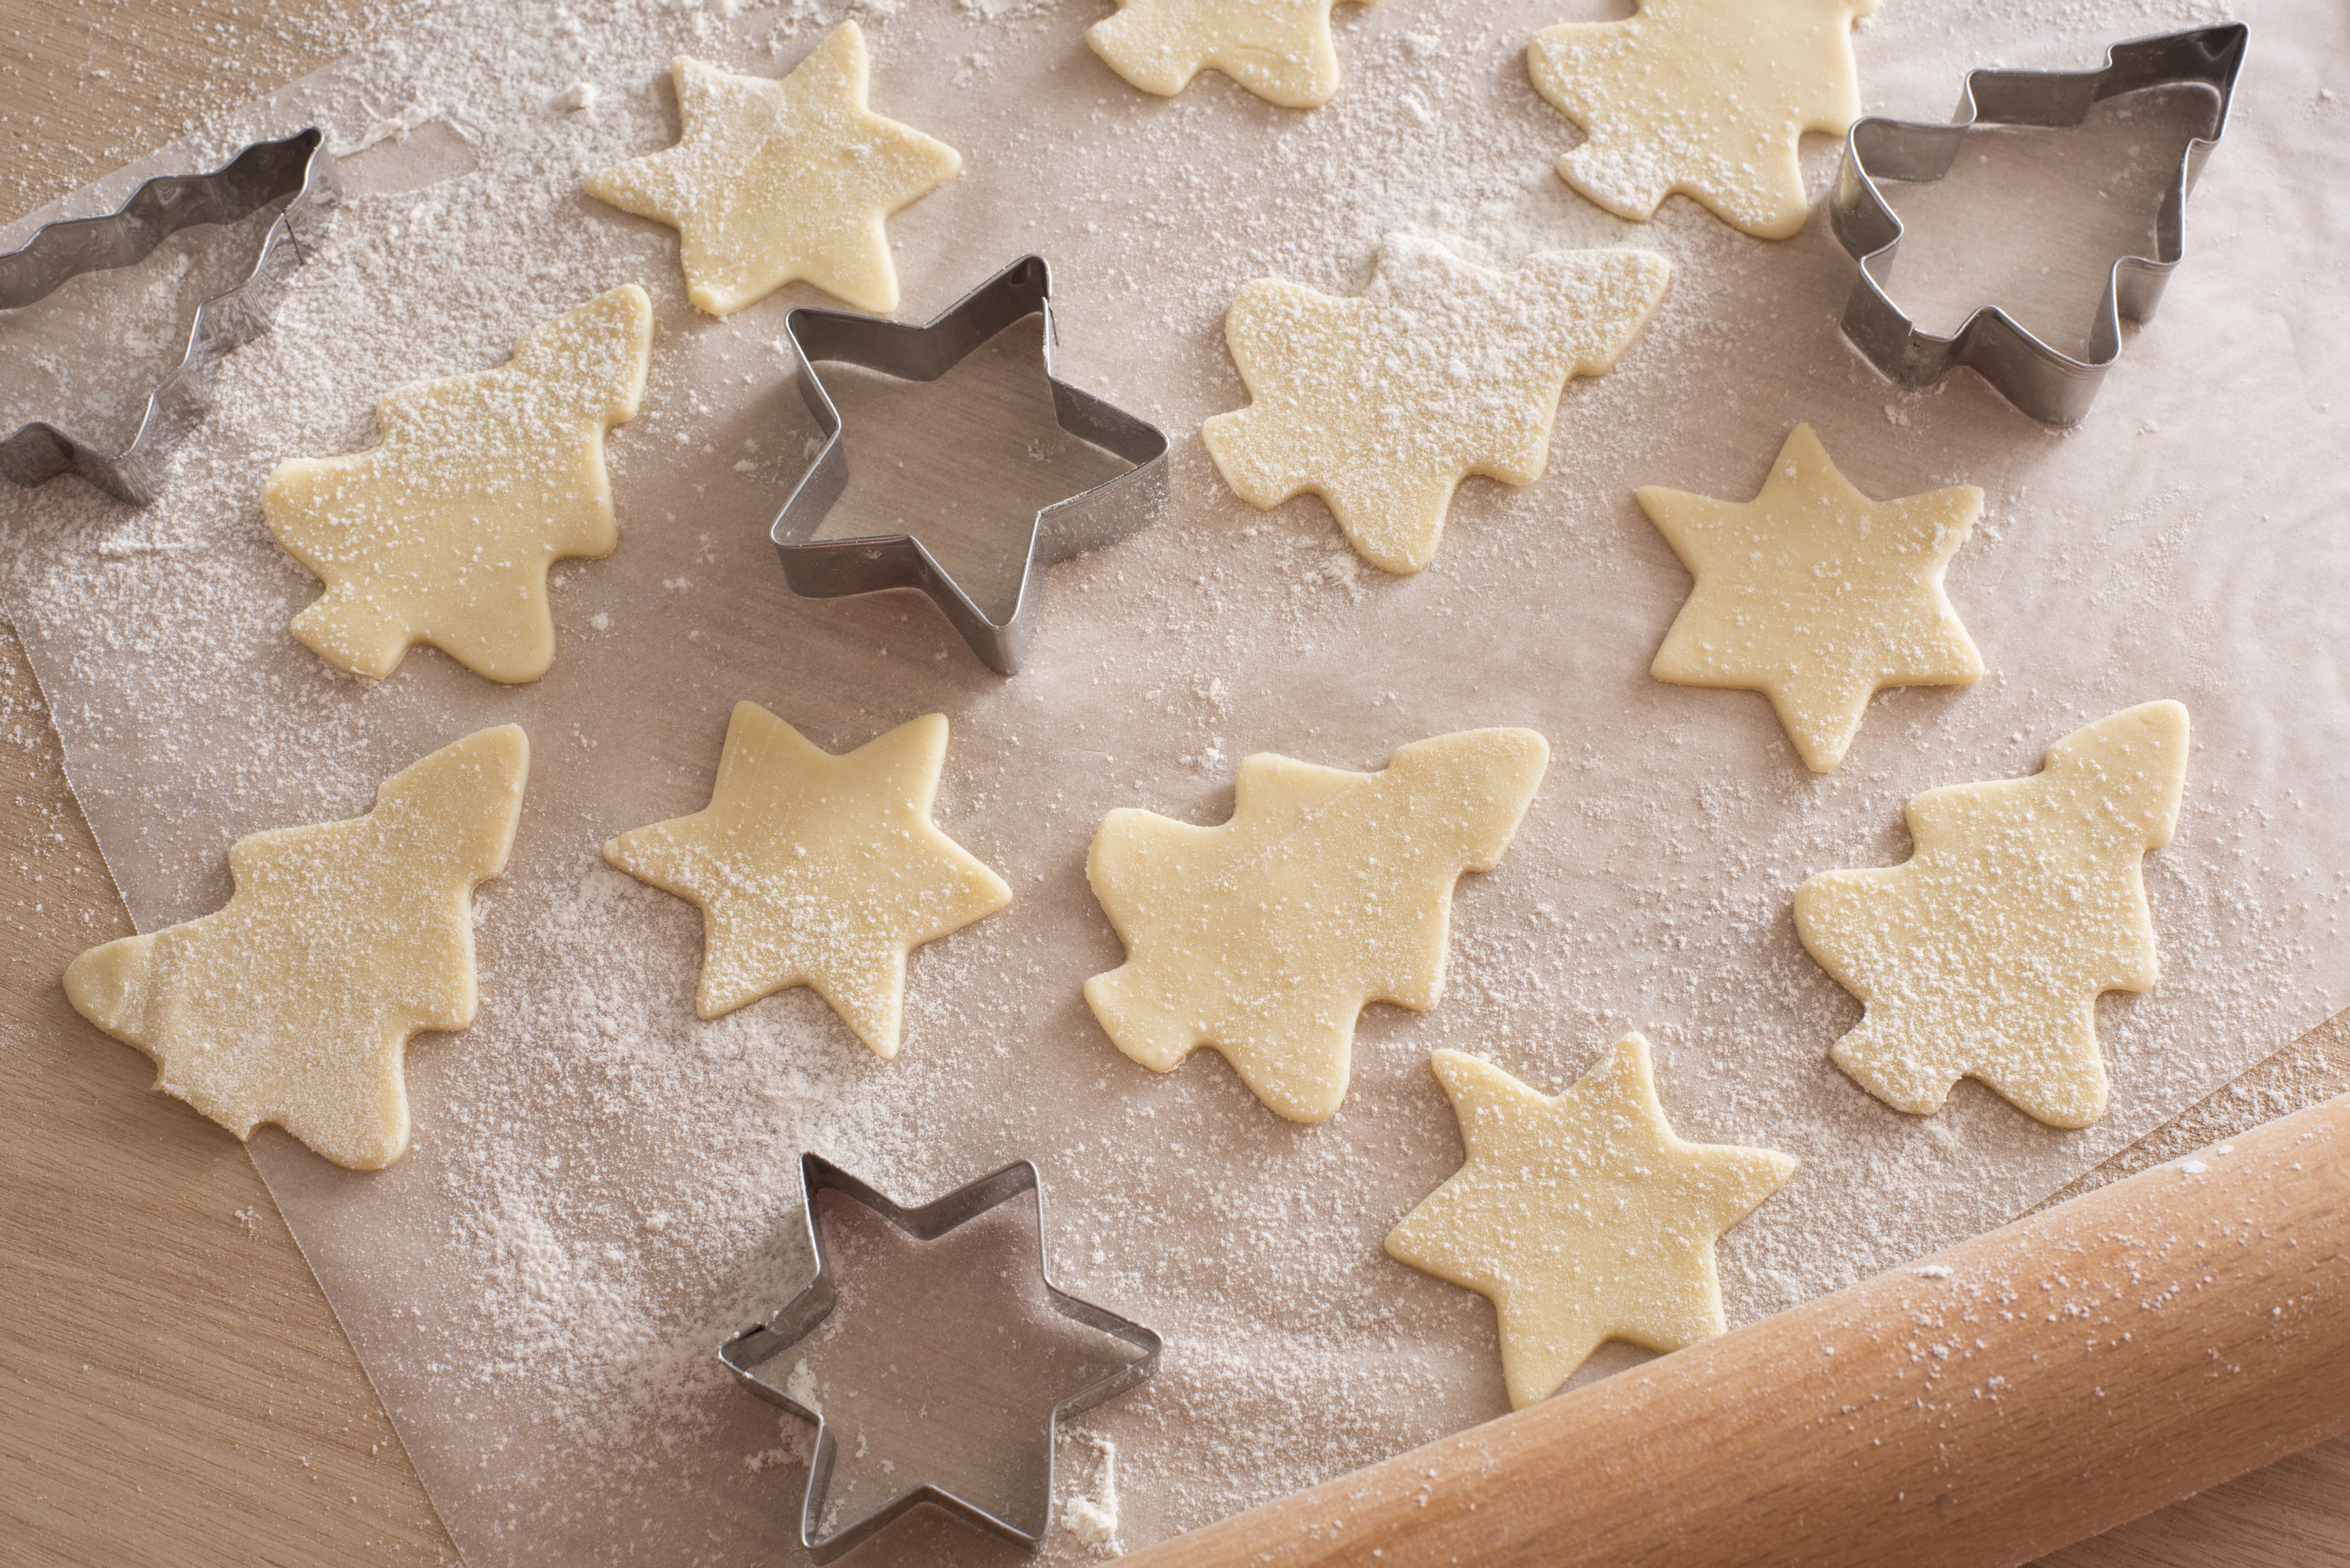 Making traditional Christmas cookies at home with star and tree shaped cookie cutters alongside cut out uncooked dough on floured paper on the kitchen counter